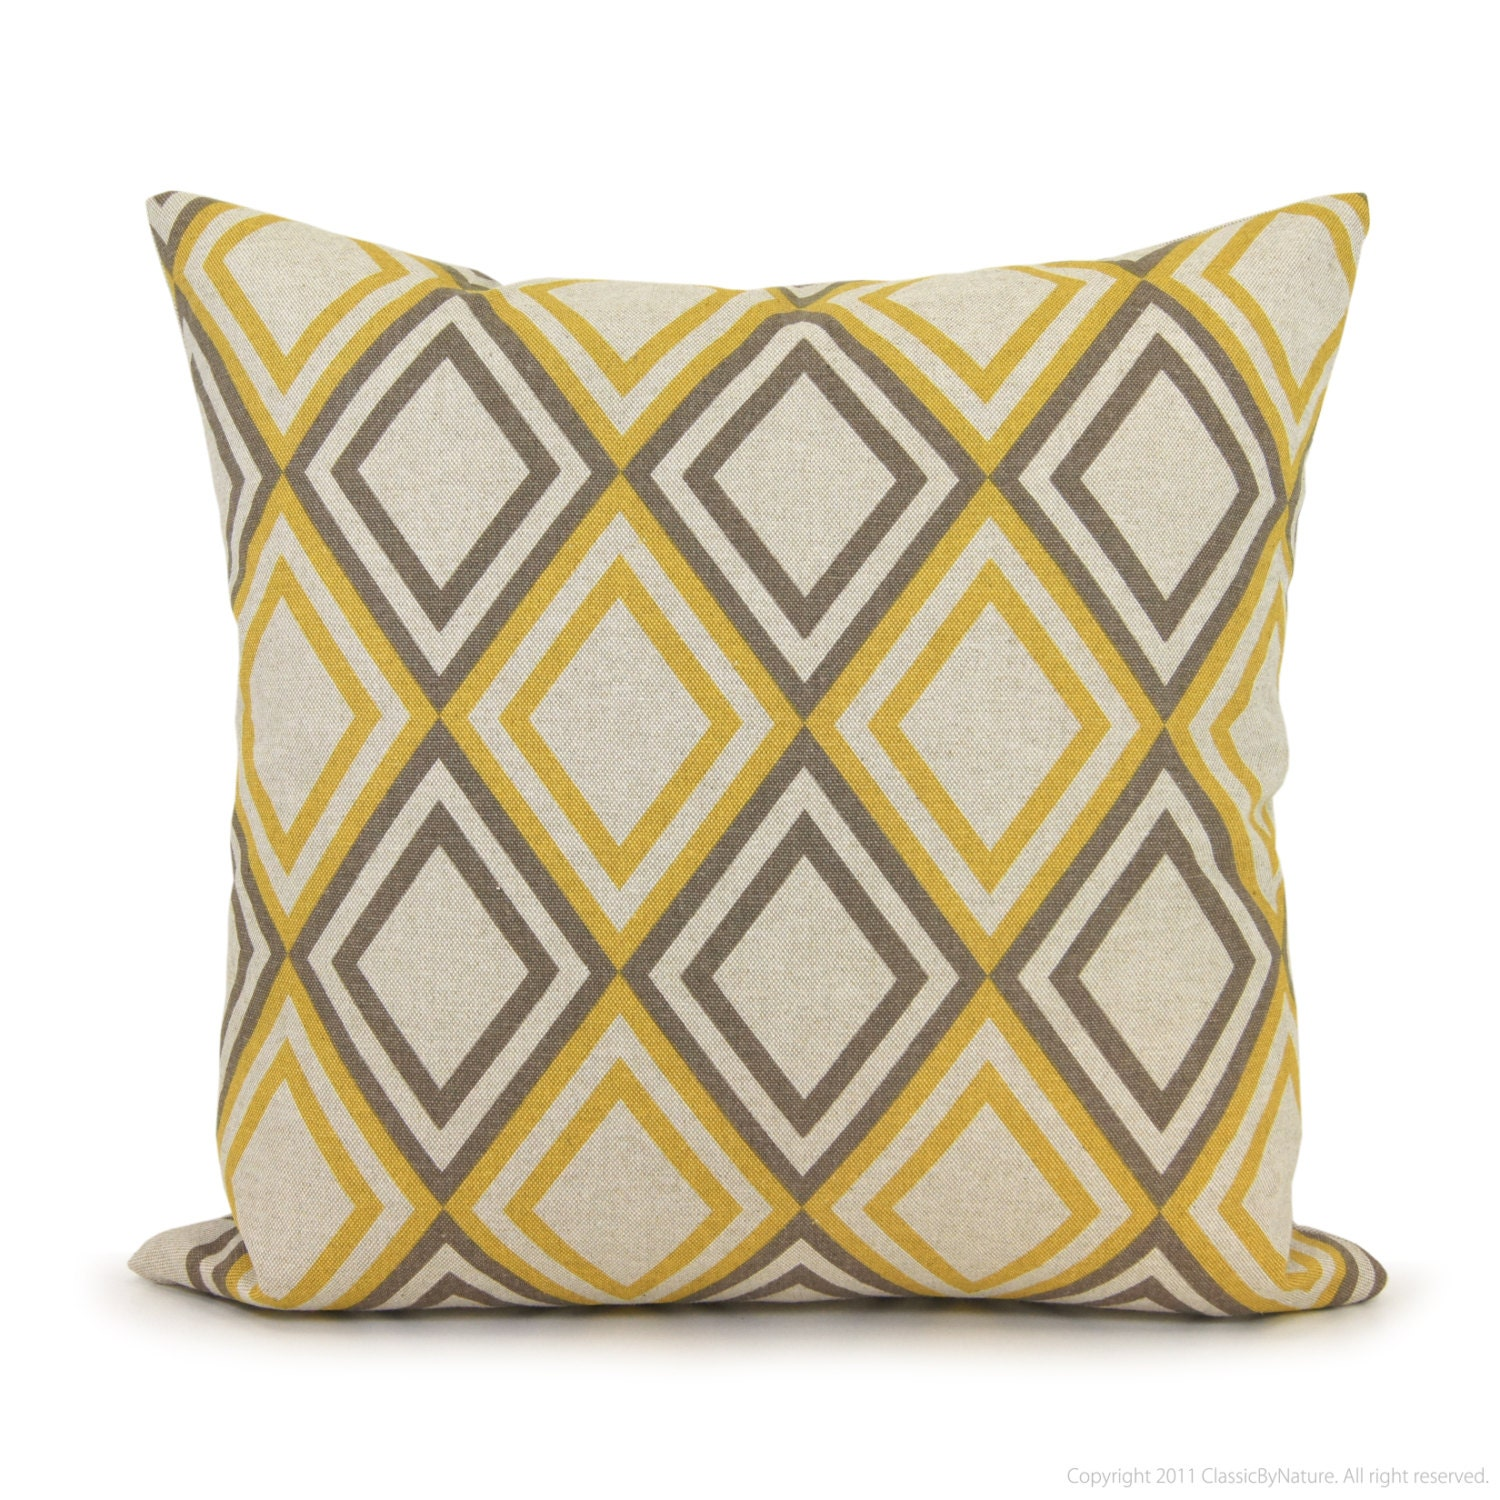 Geometric pillow cover - 18x18 pillow cover - Gray and yellow decorative pillow cover - Modern 18x18 throw pillow cover - ClassicByNature